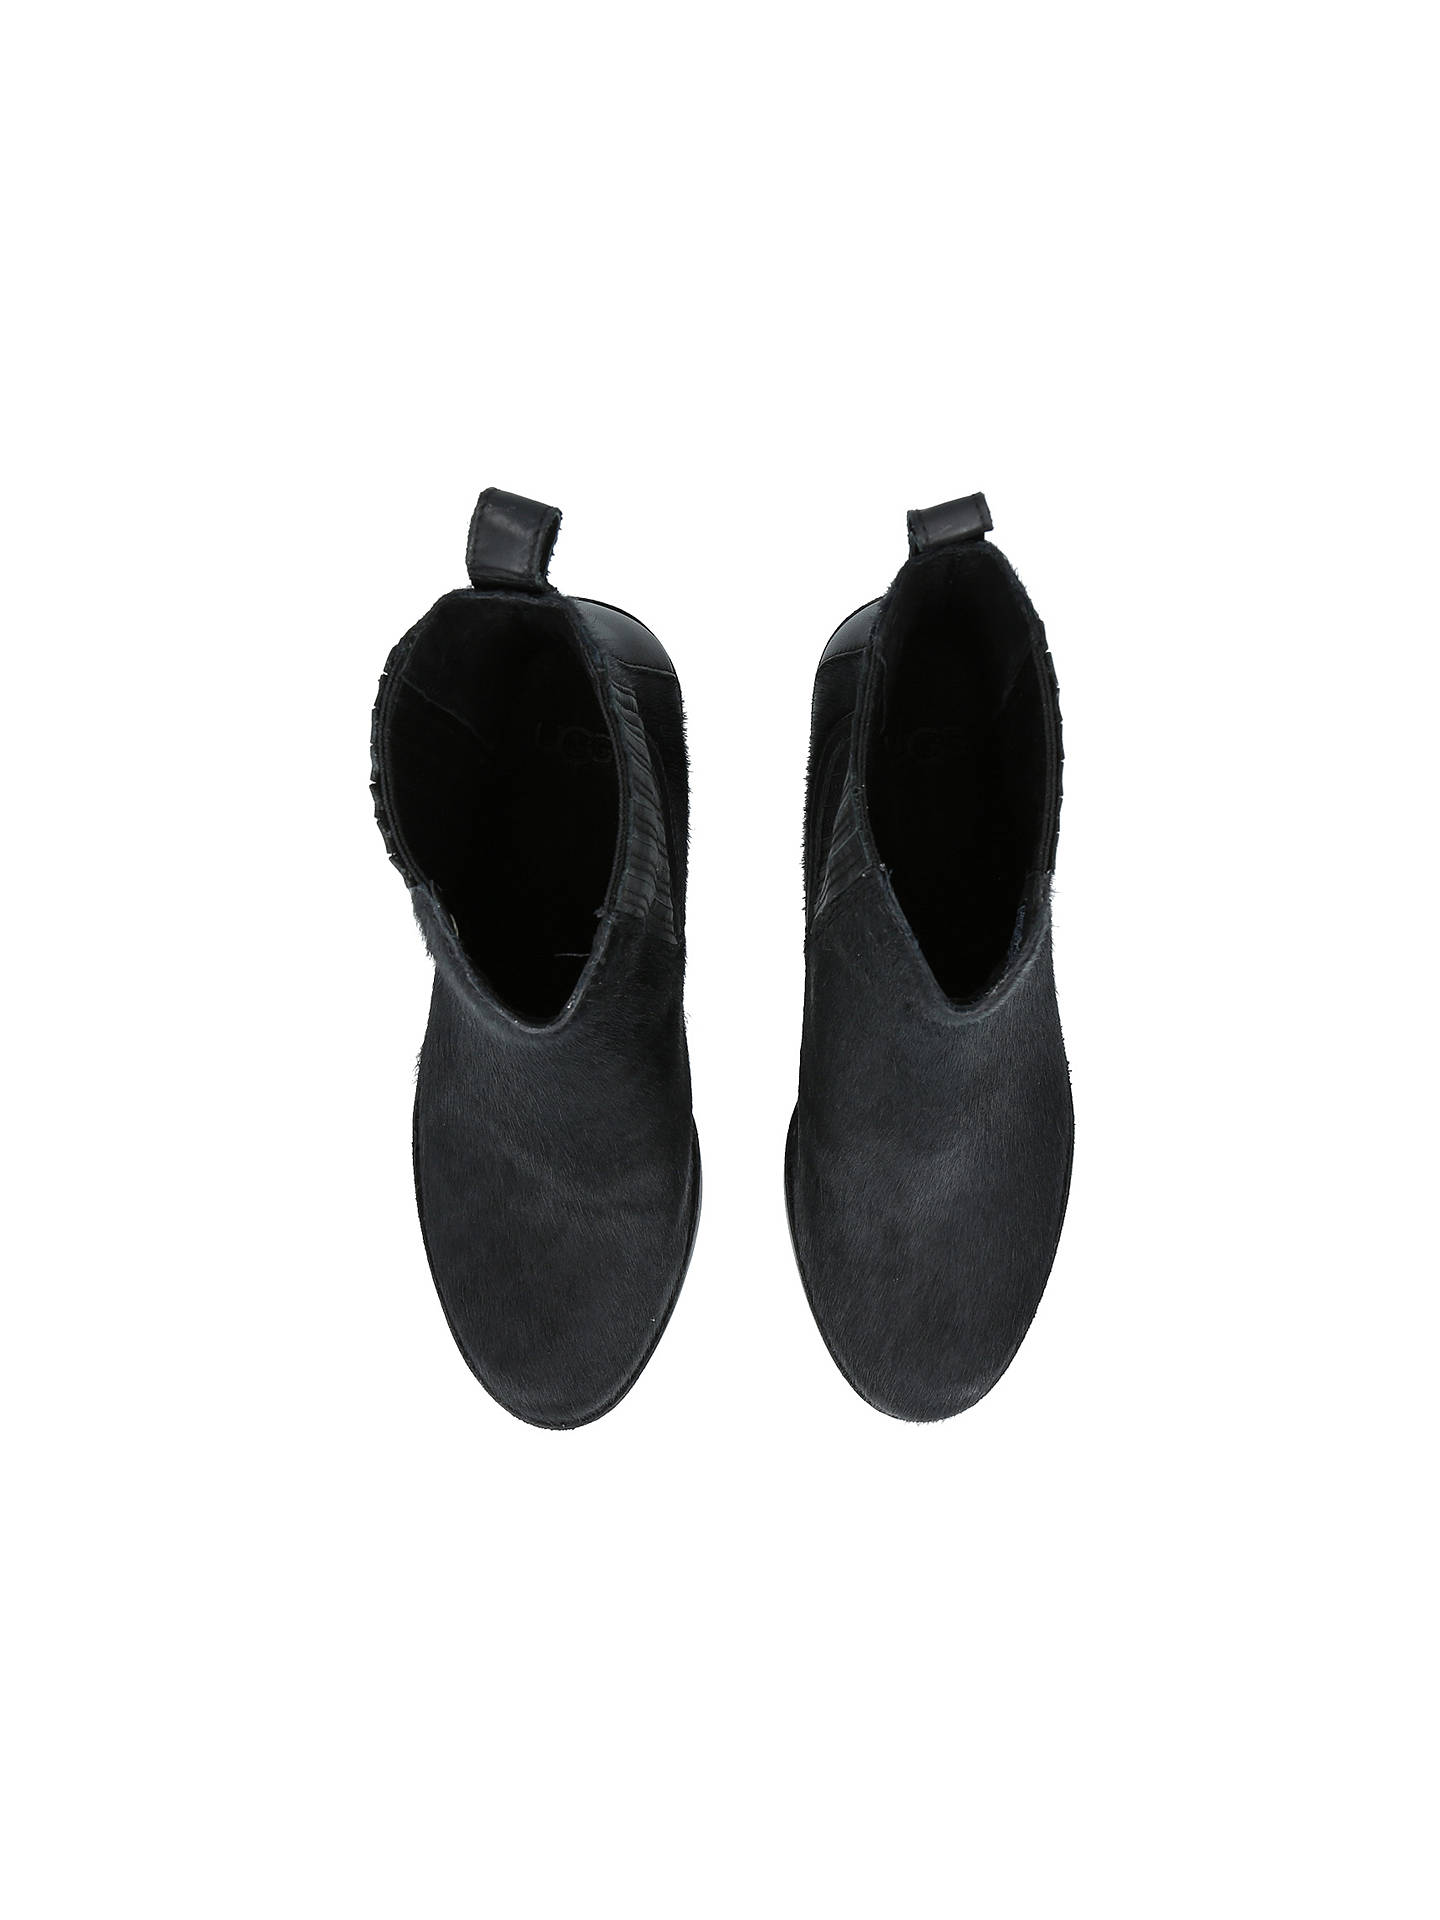 398c92dca0a UGG Camden Block Heeled Ankle Chelsea Boots, Black Suede at John ...